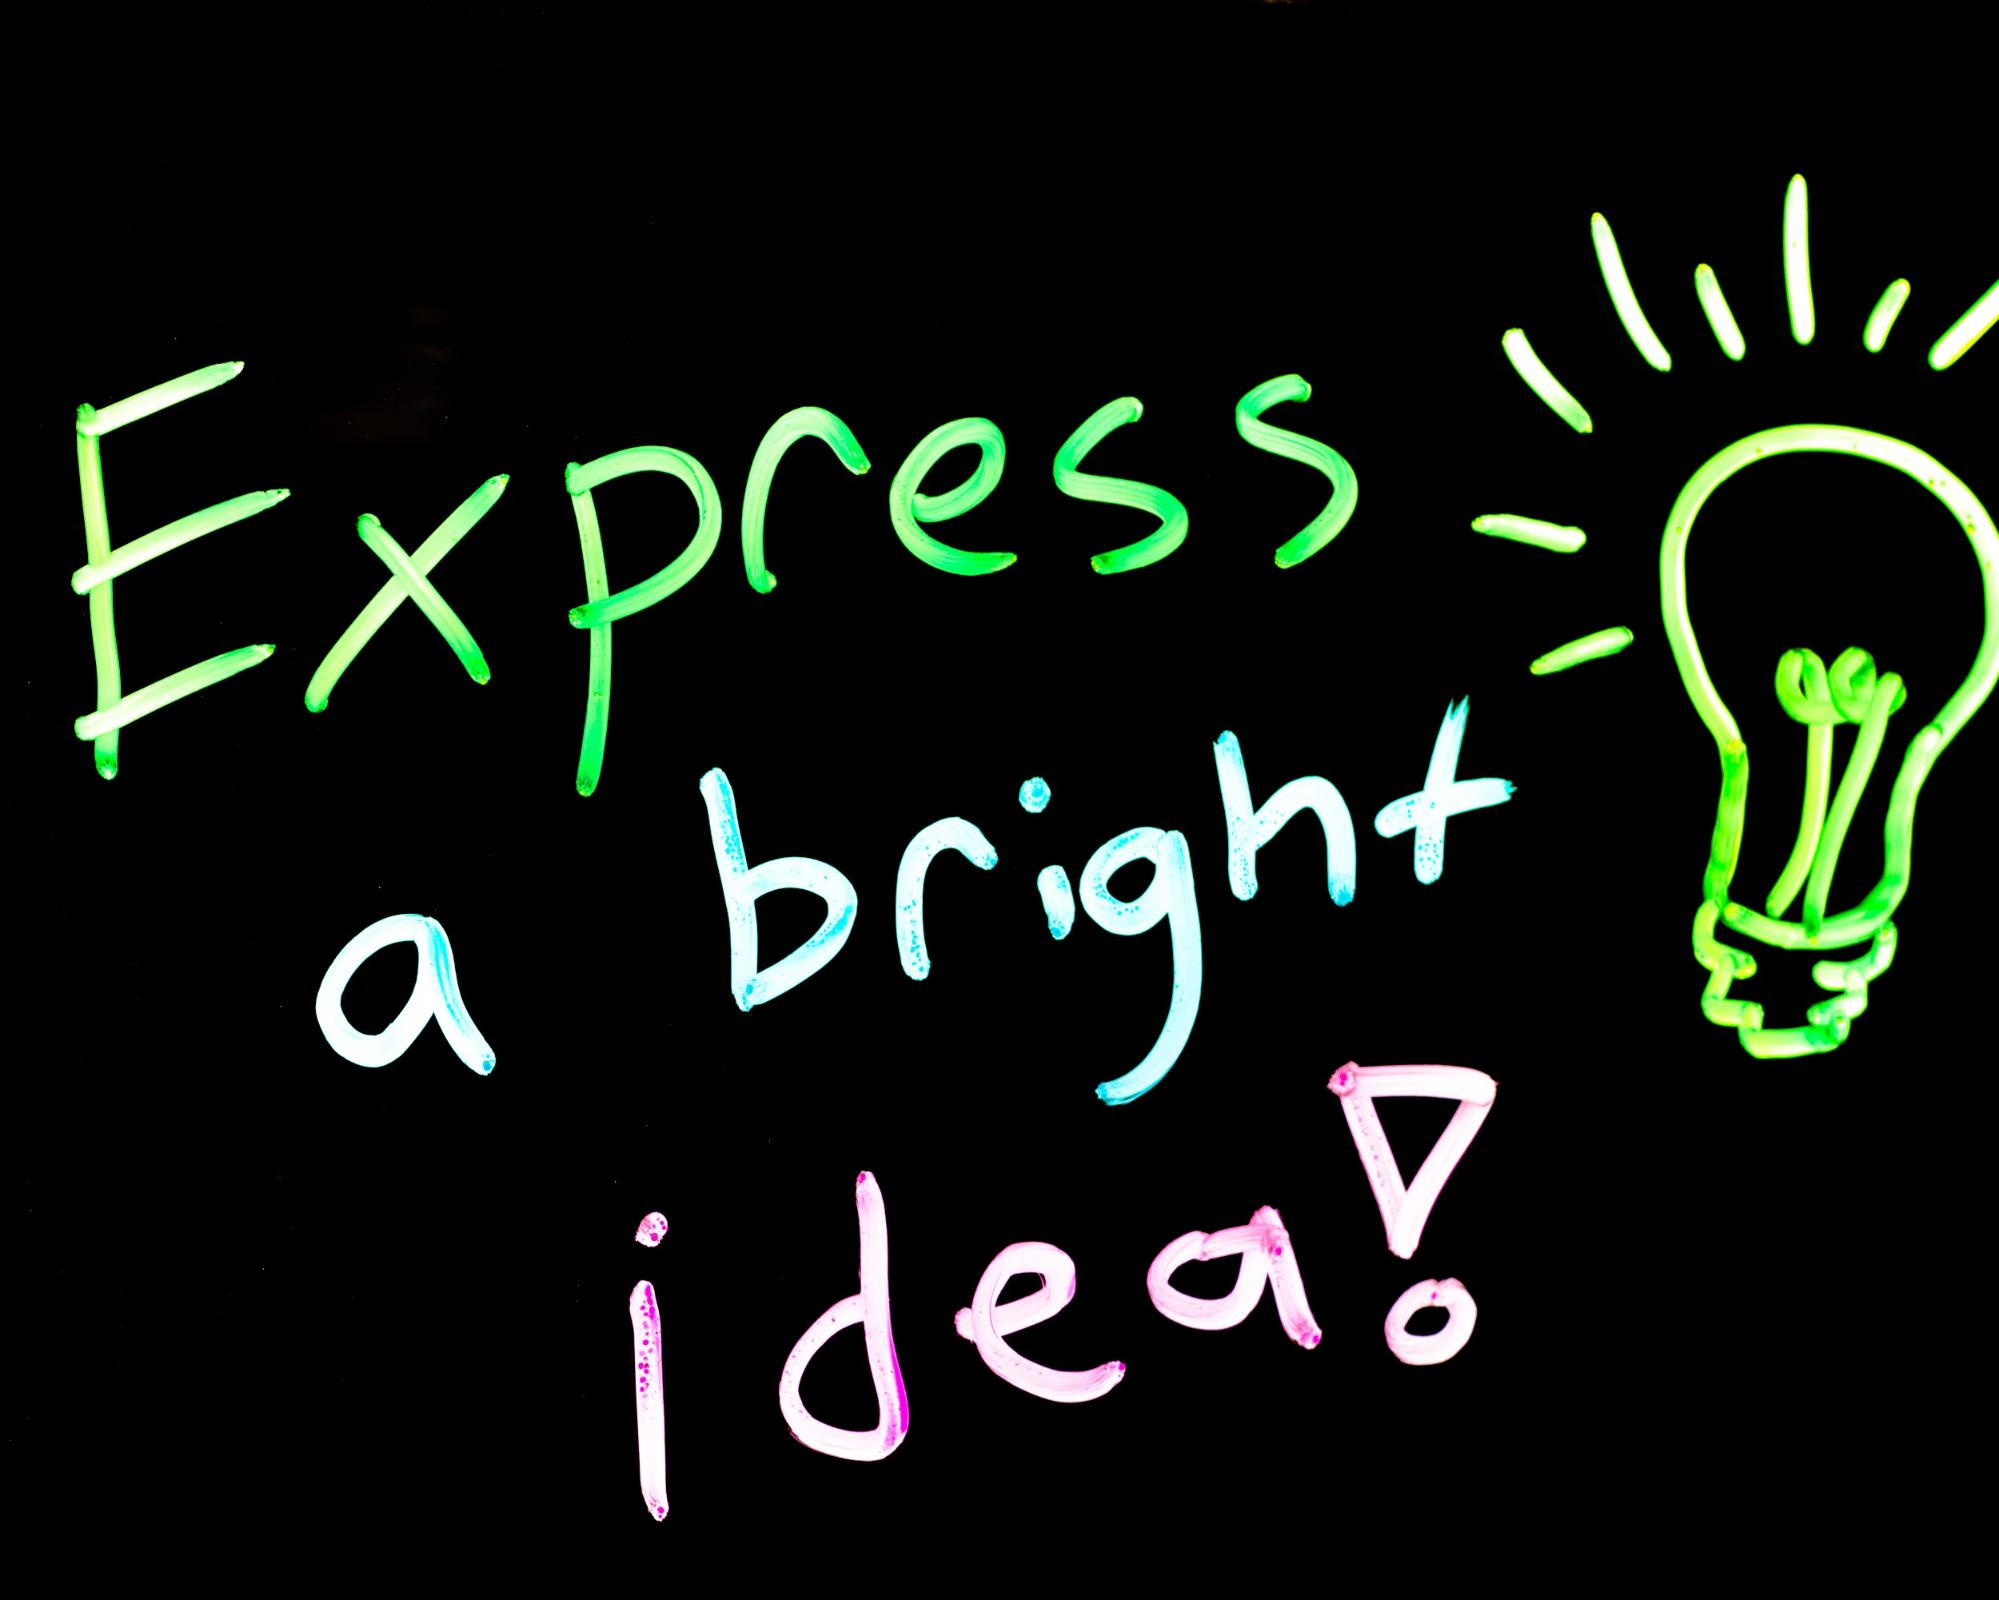 Express a bright idea with learning glass